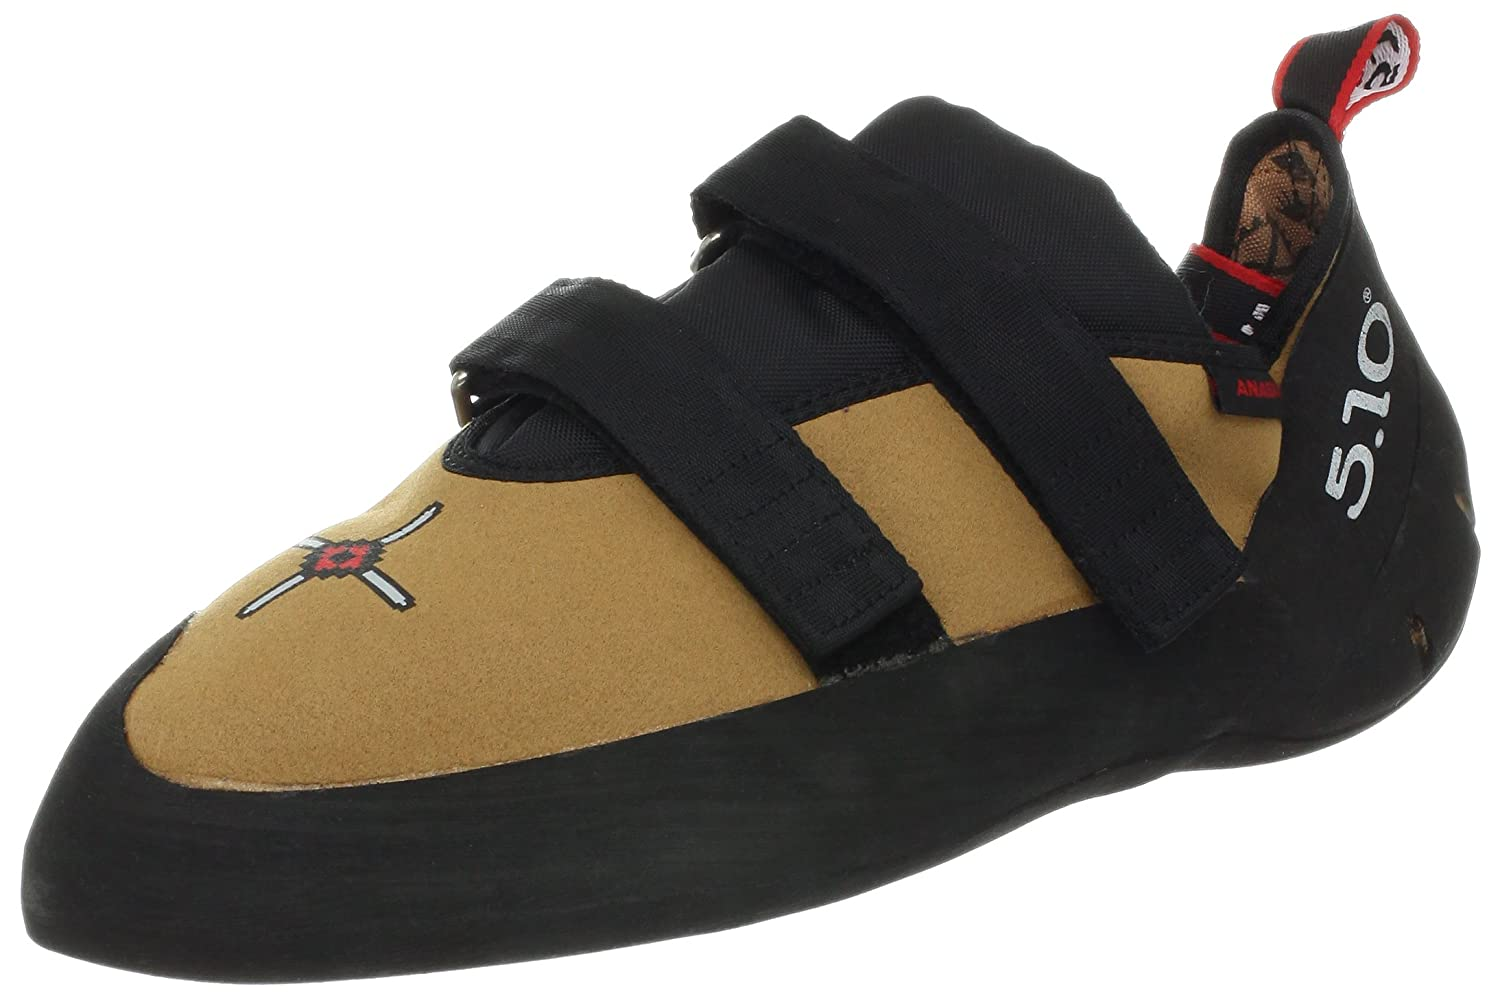 Five Ten Men's Anasazi VCS Climbing Shoe Anasazi VCS-M